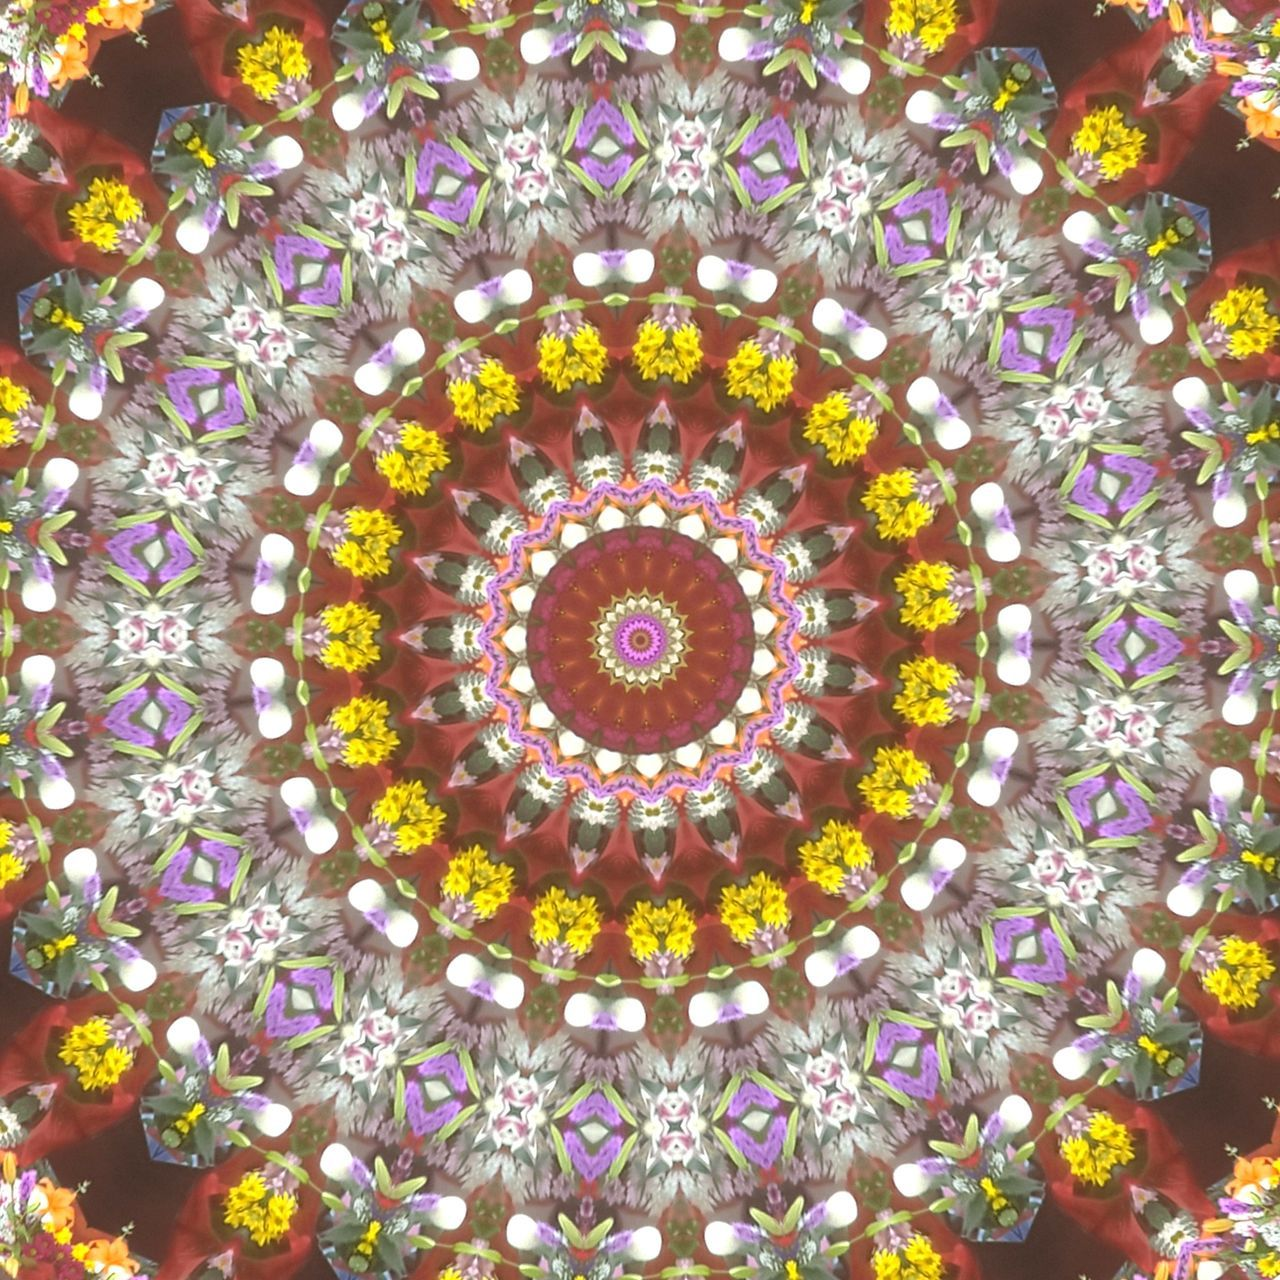 Streets of downtown annapolis next the florist's stand. Floral Pattern No People Flower Pattern Multi Colored Day Urban Circle Kaleidoscope Floral